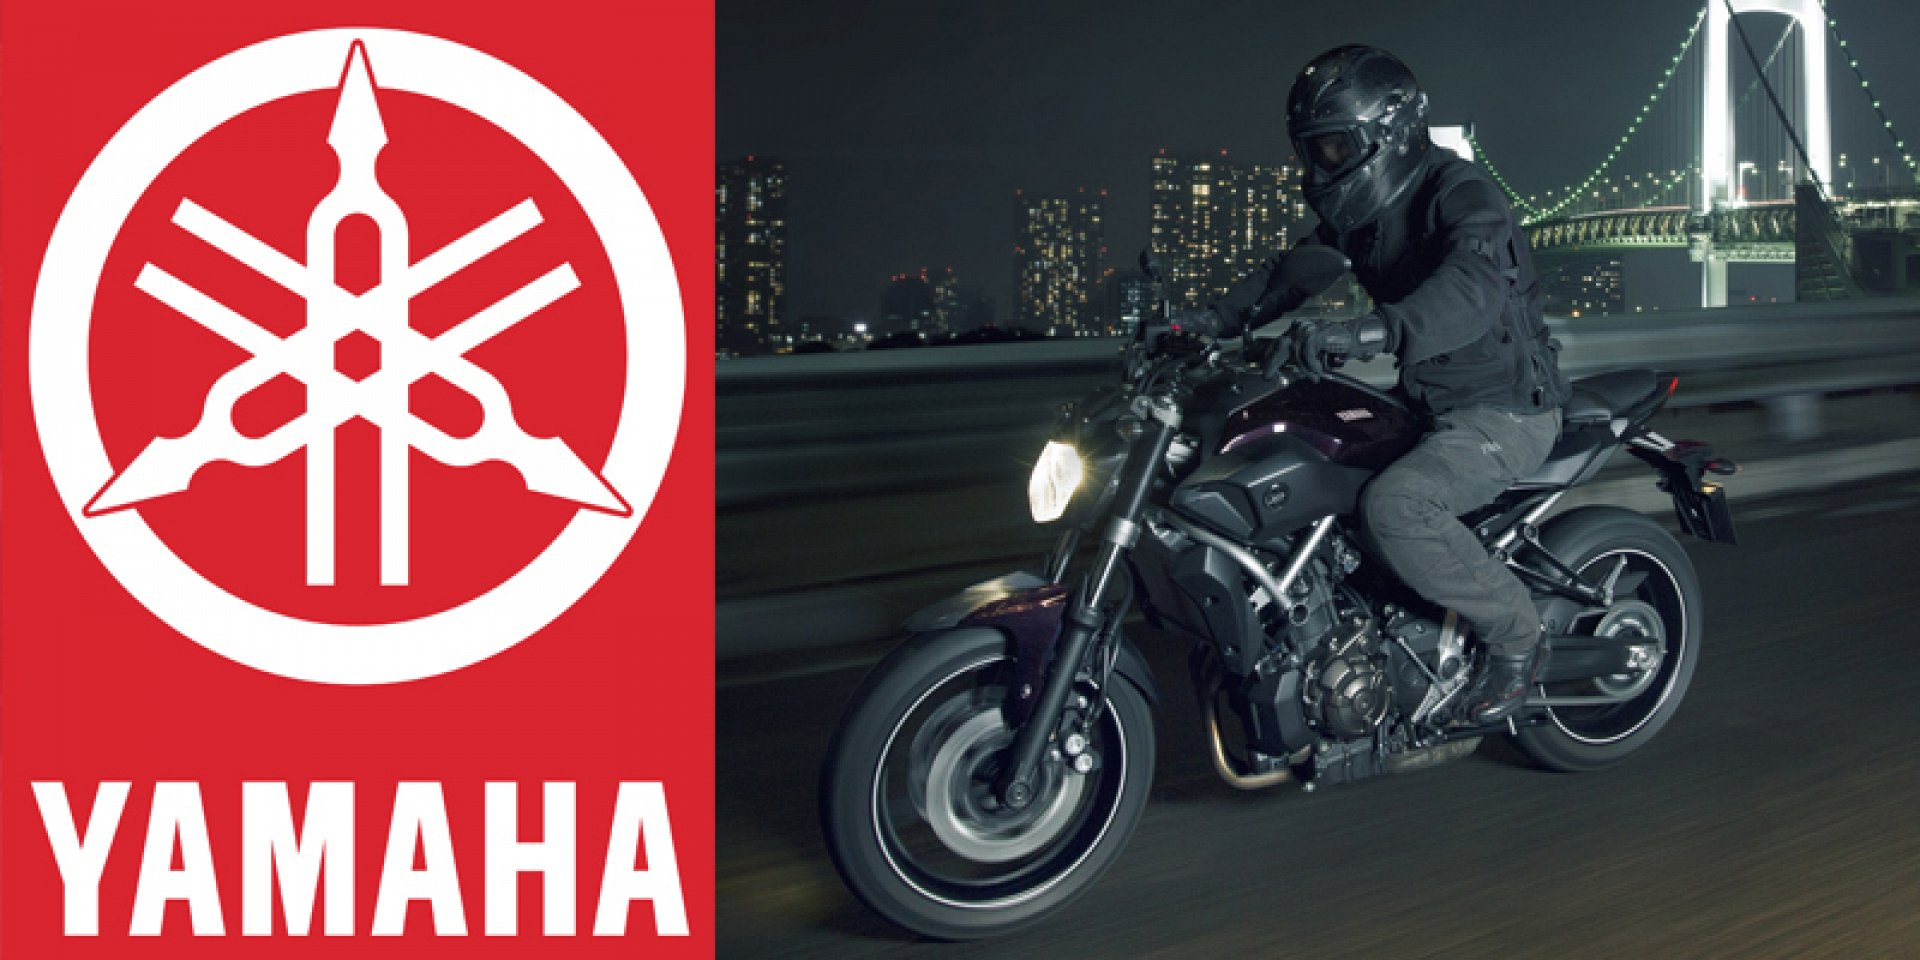 New Yamaha Motorcycles for sale